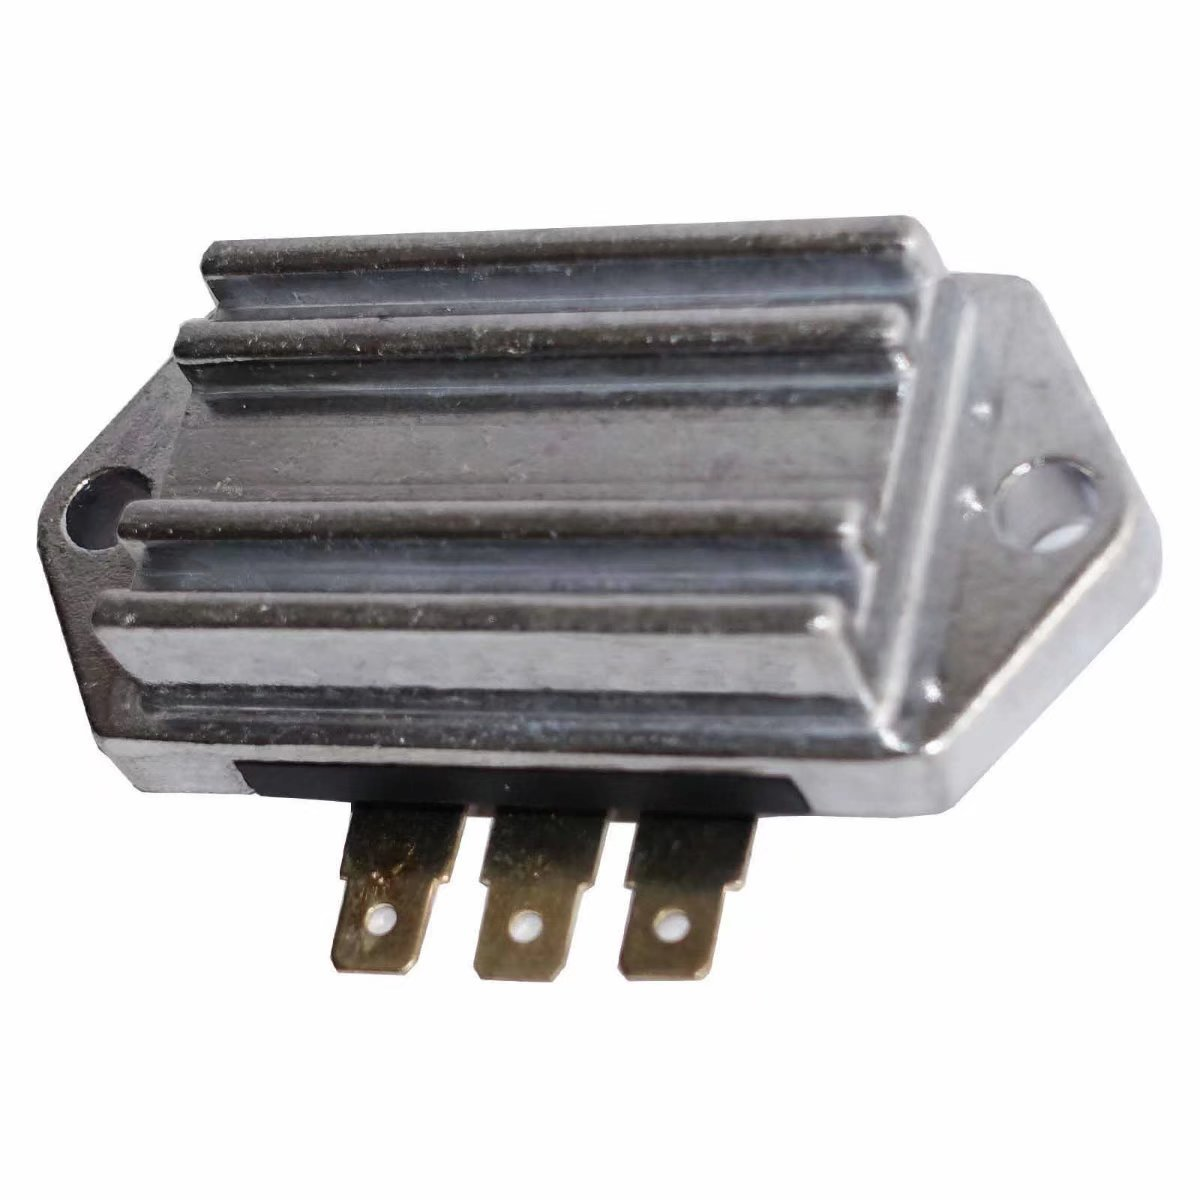 Paddsun Voltage Regulator Rectifier for Kohler 41 403 10-S 41 403 09-S 25 403 03-S Changes Stator from AC to DC 15 amps Spport 8-25 HP Engines